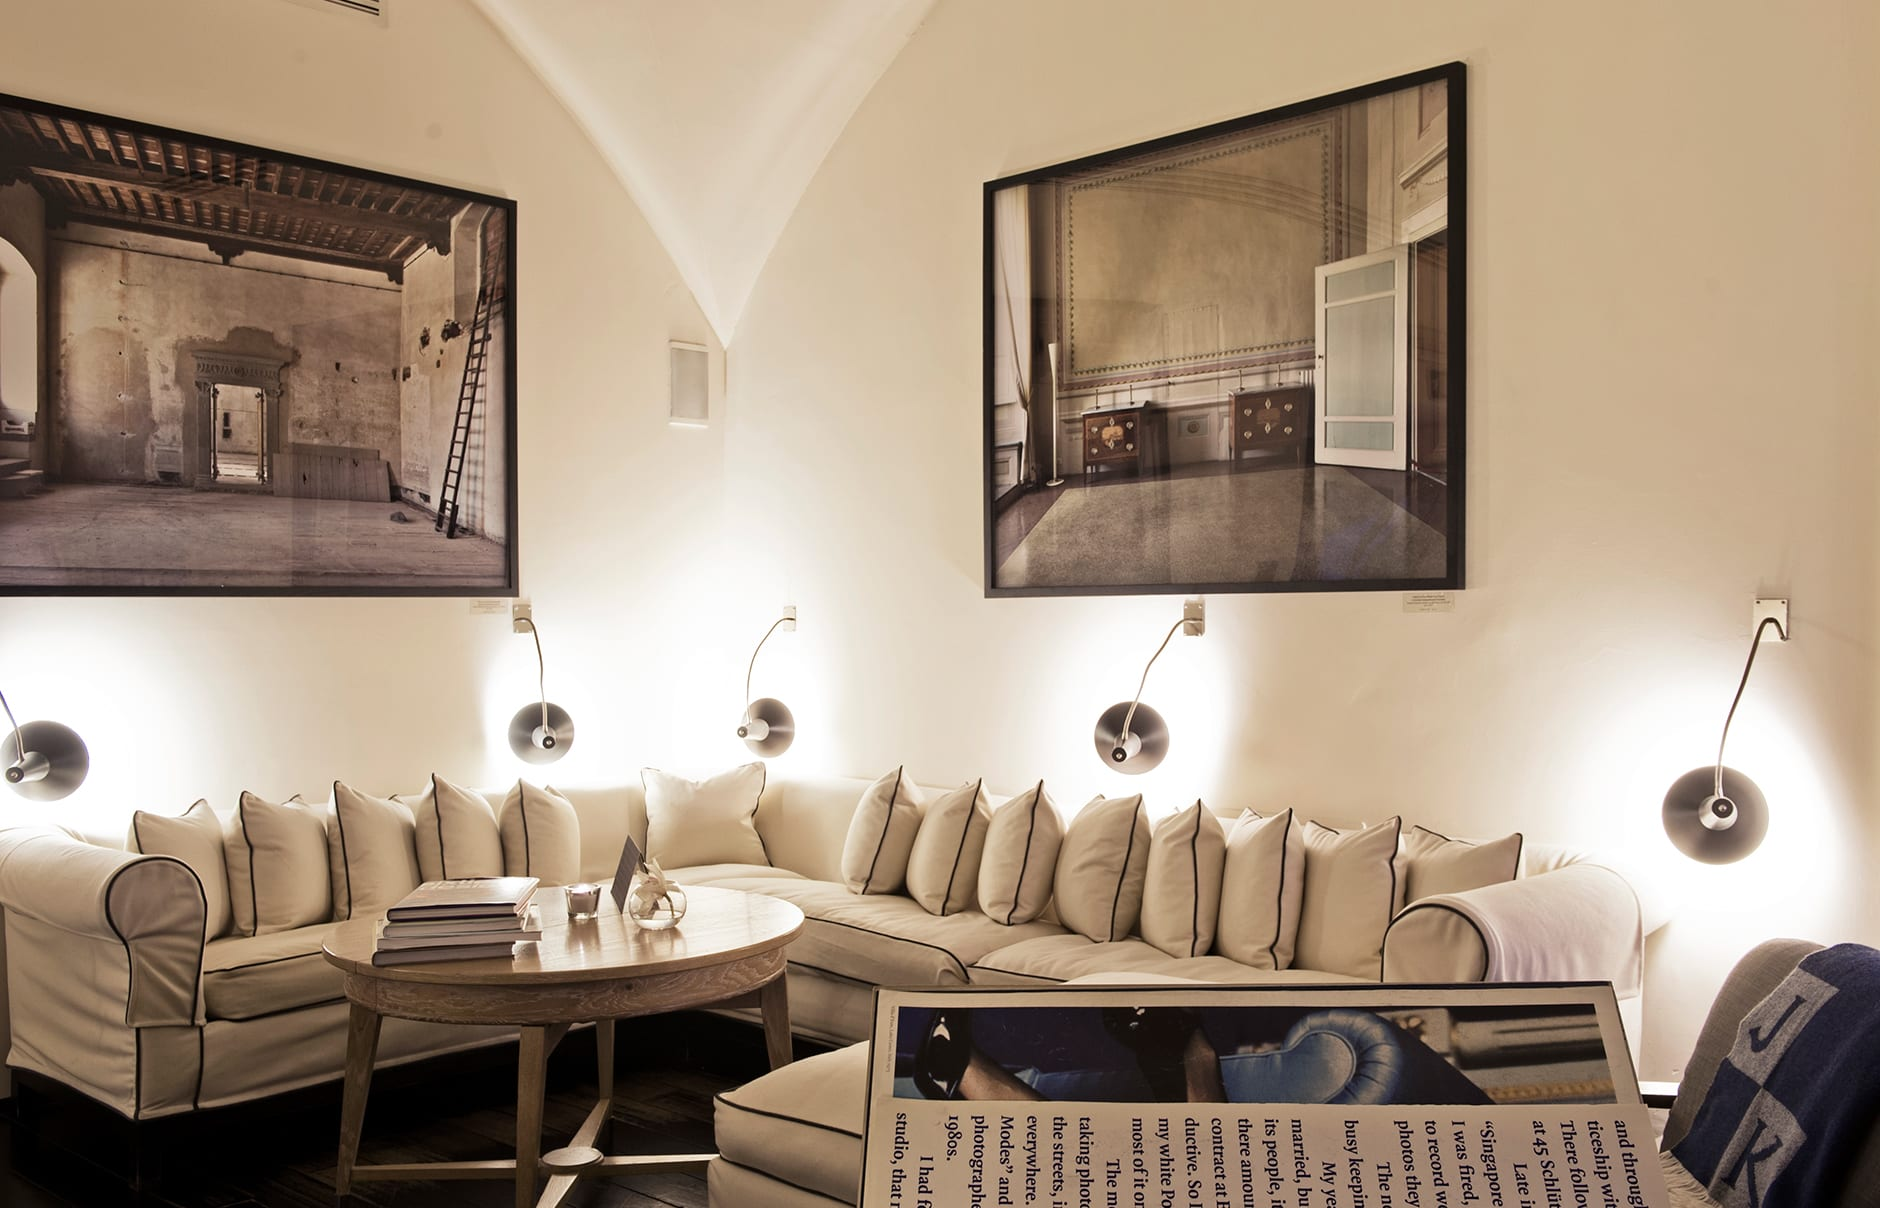 J.K. Place Firenze, Florence, Italy. Hotel Review by TravelPlusStyle. Photo © J.K. Place